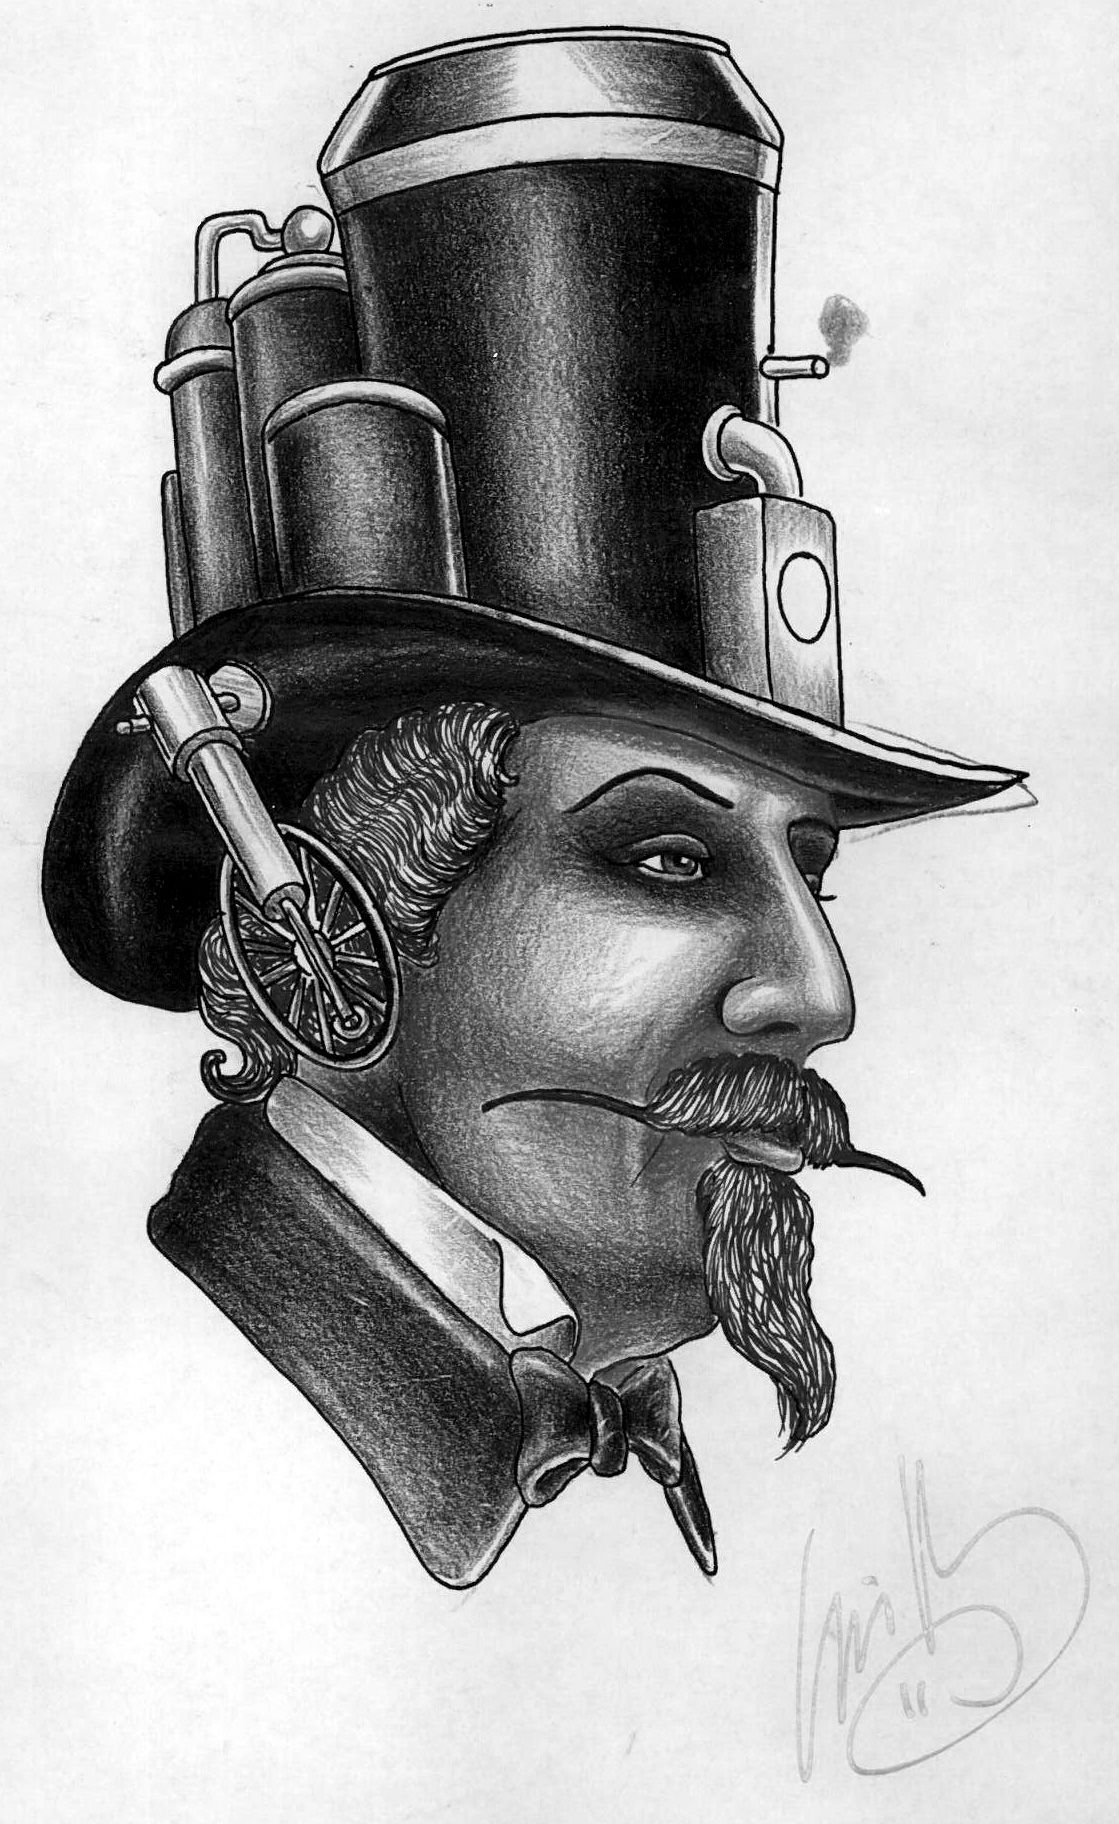 Steam Punk Tattoo Design By Louis Molloy To Win One Of His Beautiful Designs Signed Enter Our Competition At Faceb Steampunk Tattoo Steampunk Art Steampunk